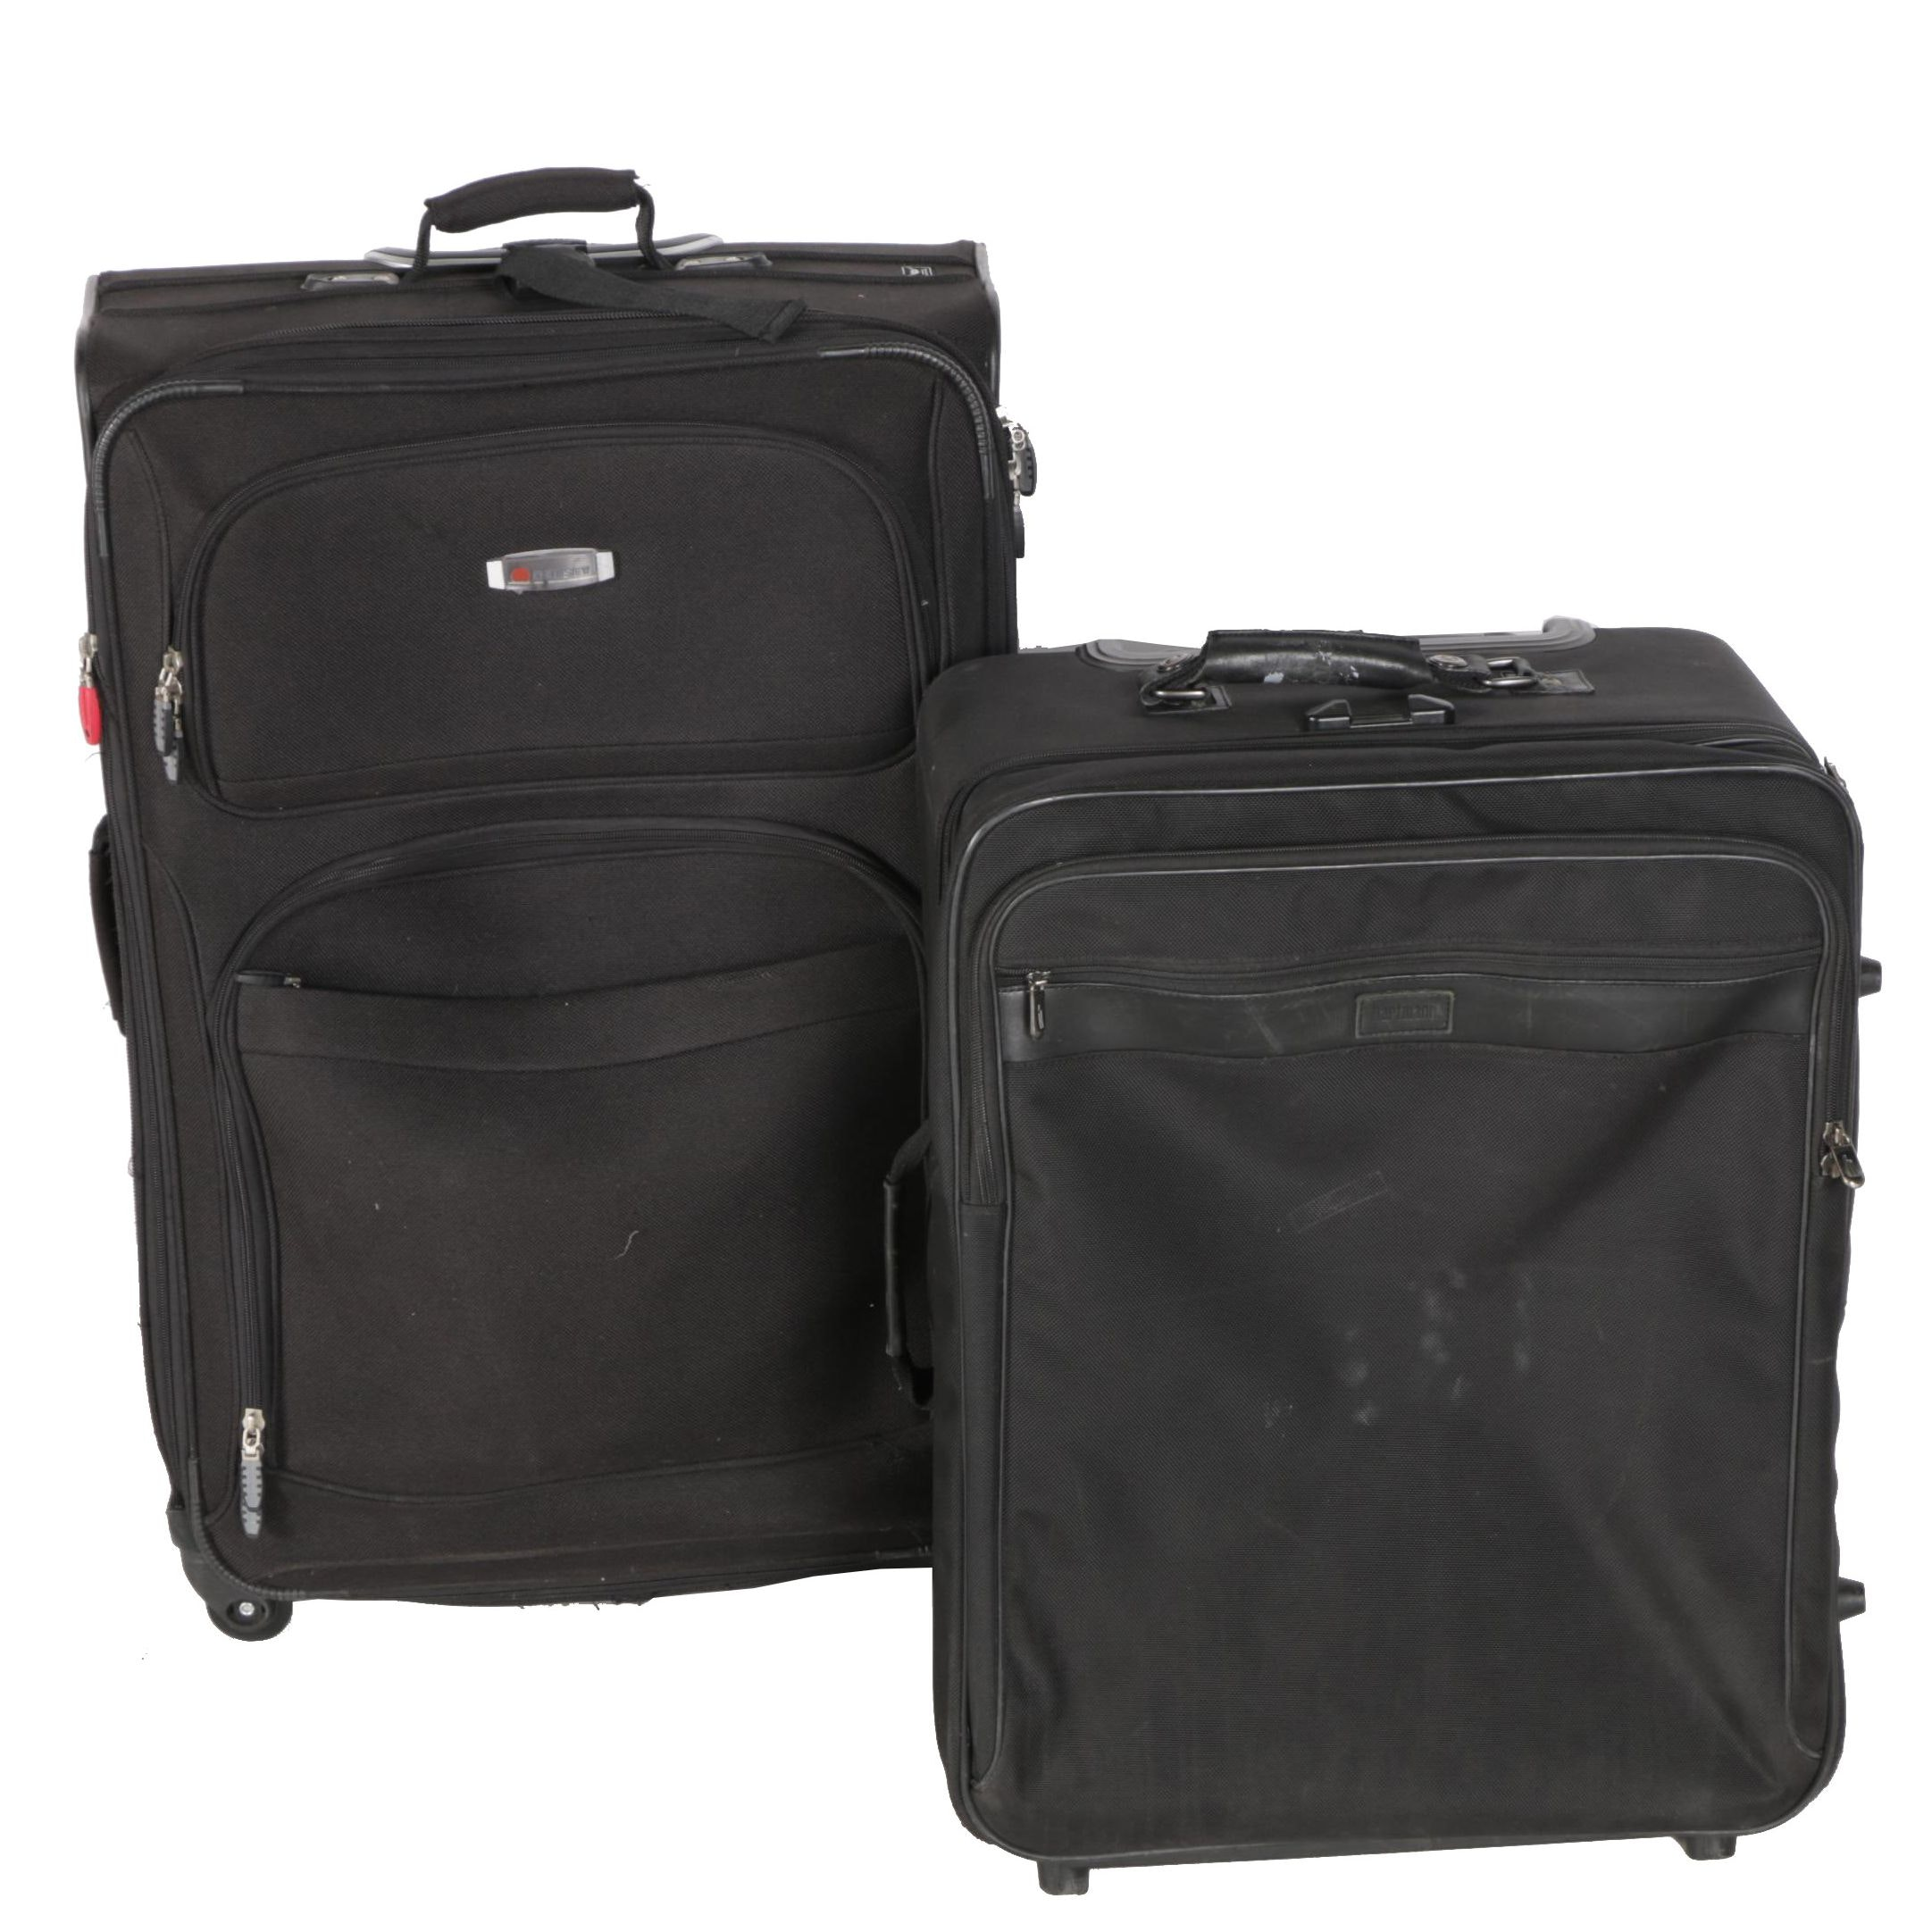 Delsey and Hartmann Luggage